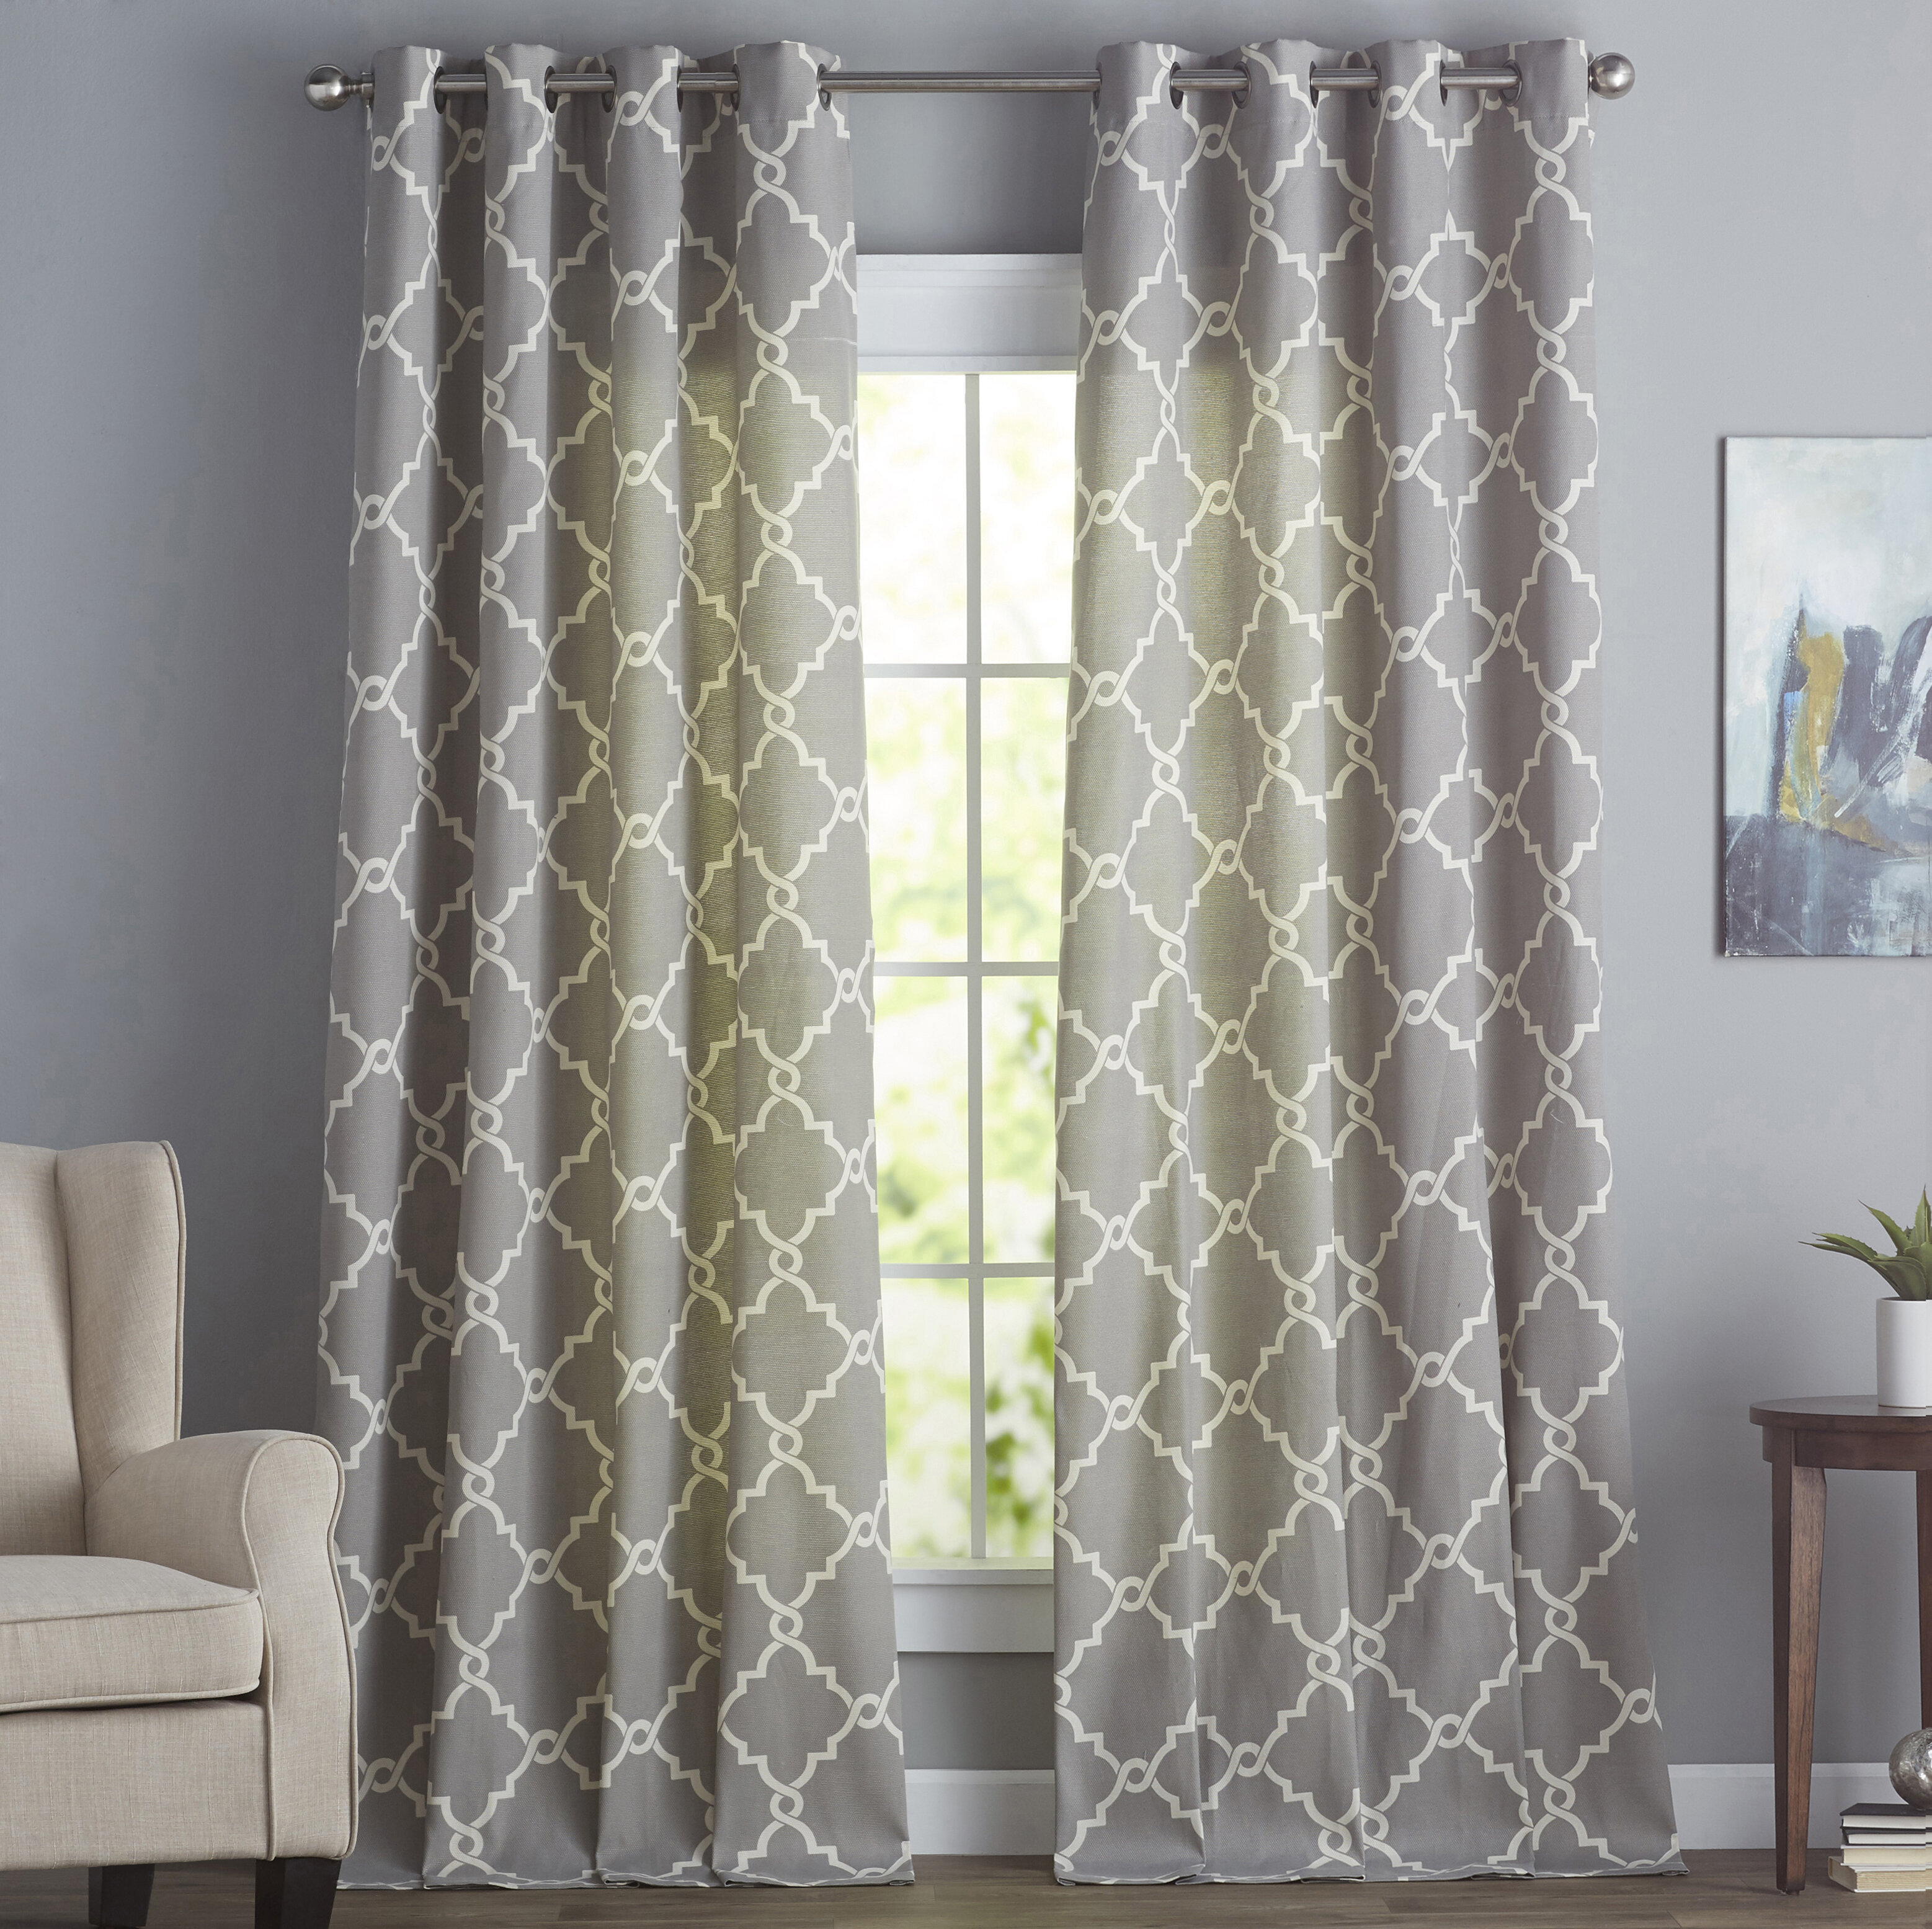 curtains embroidery drapes plaid decorating city birch grommet image geometric mellanie design curtain sheer size modern outstanding of craft pattern full plant room captivating lane casual inspirations with darkening